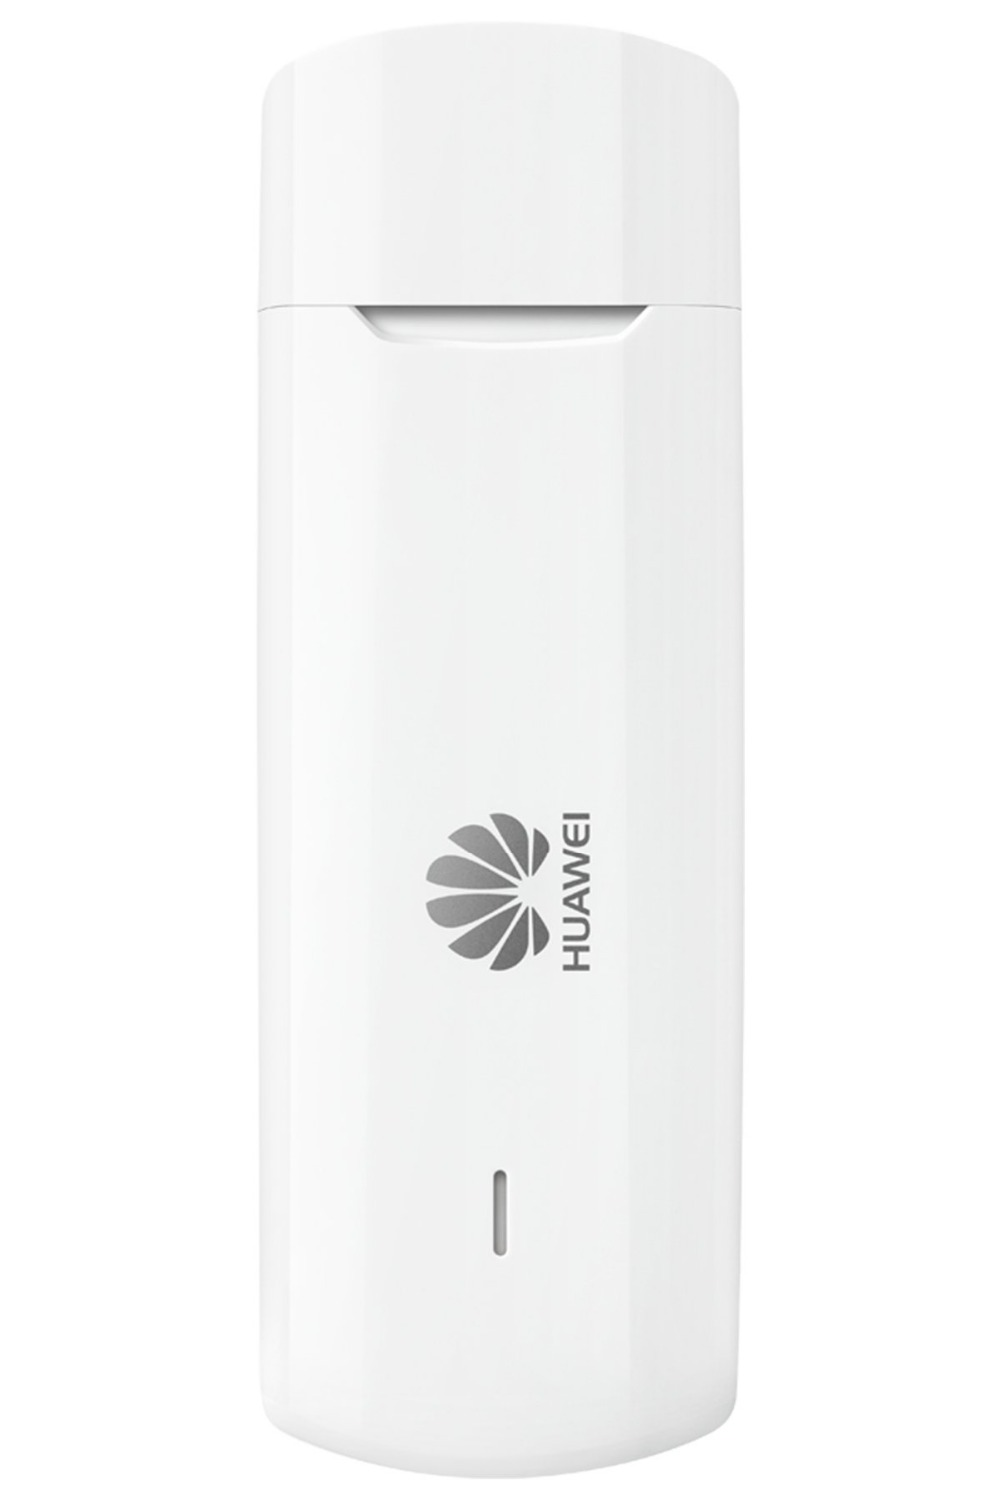 HUAWEI E3272s-600 LTE MOBILE DONGLE